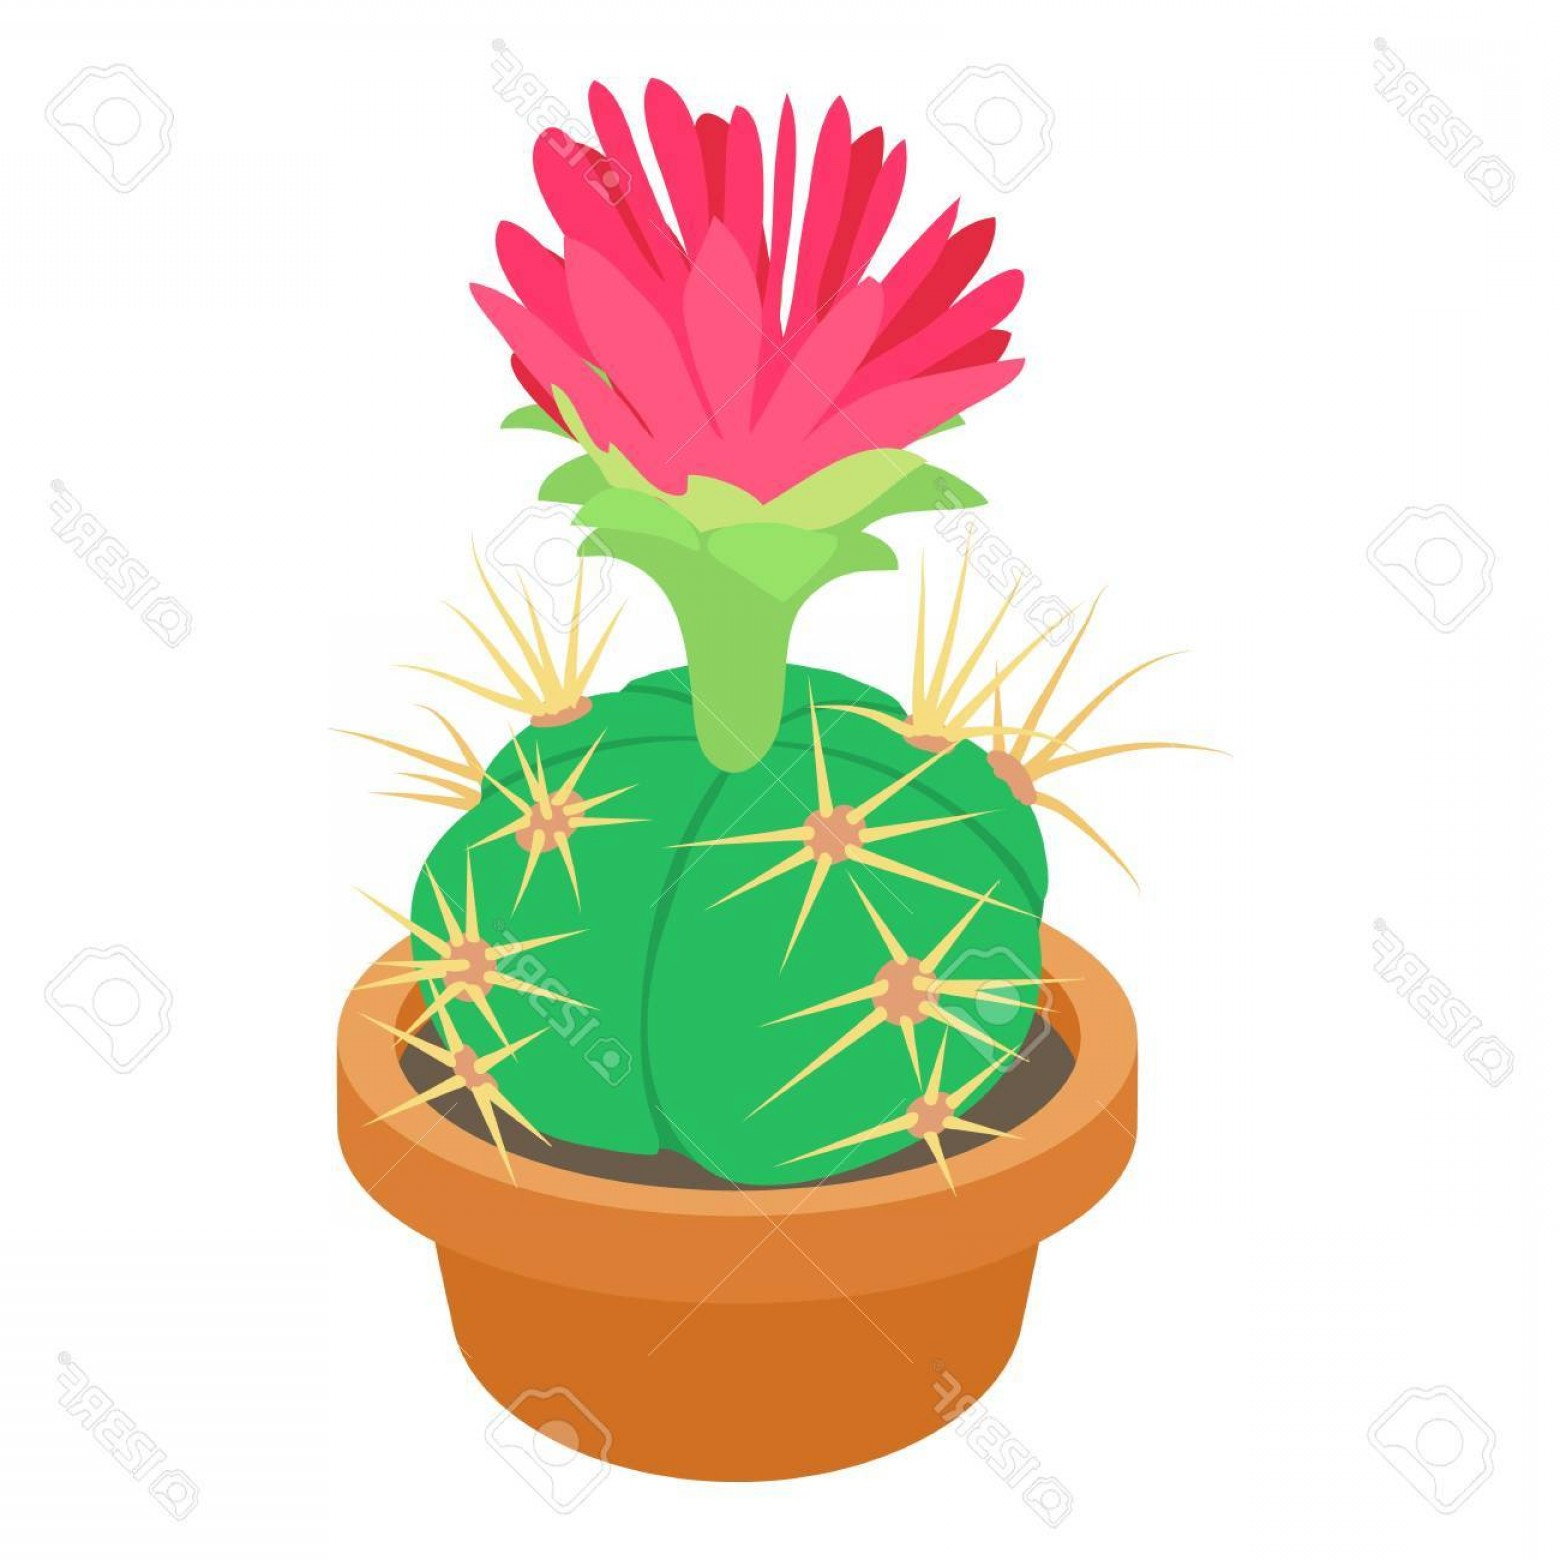 Cactus And Flower Vector: Photostock Vector Cactus With Red Flower Icon Cartoon Illustration Of Cactus With Red Flower Vector Icon For Web